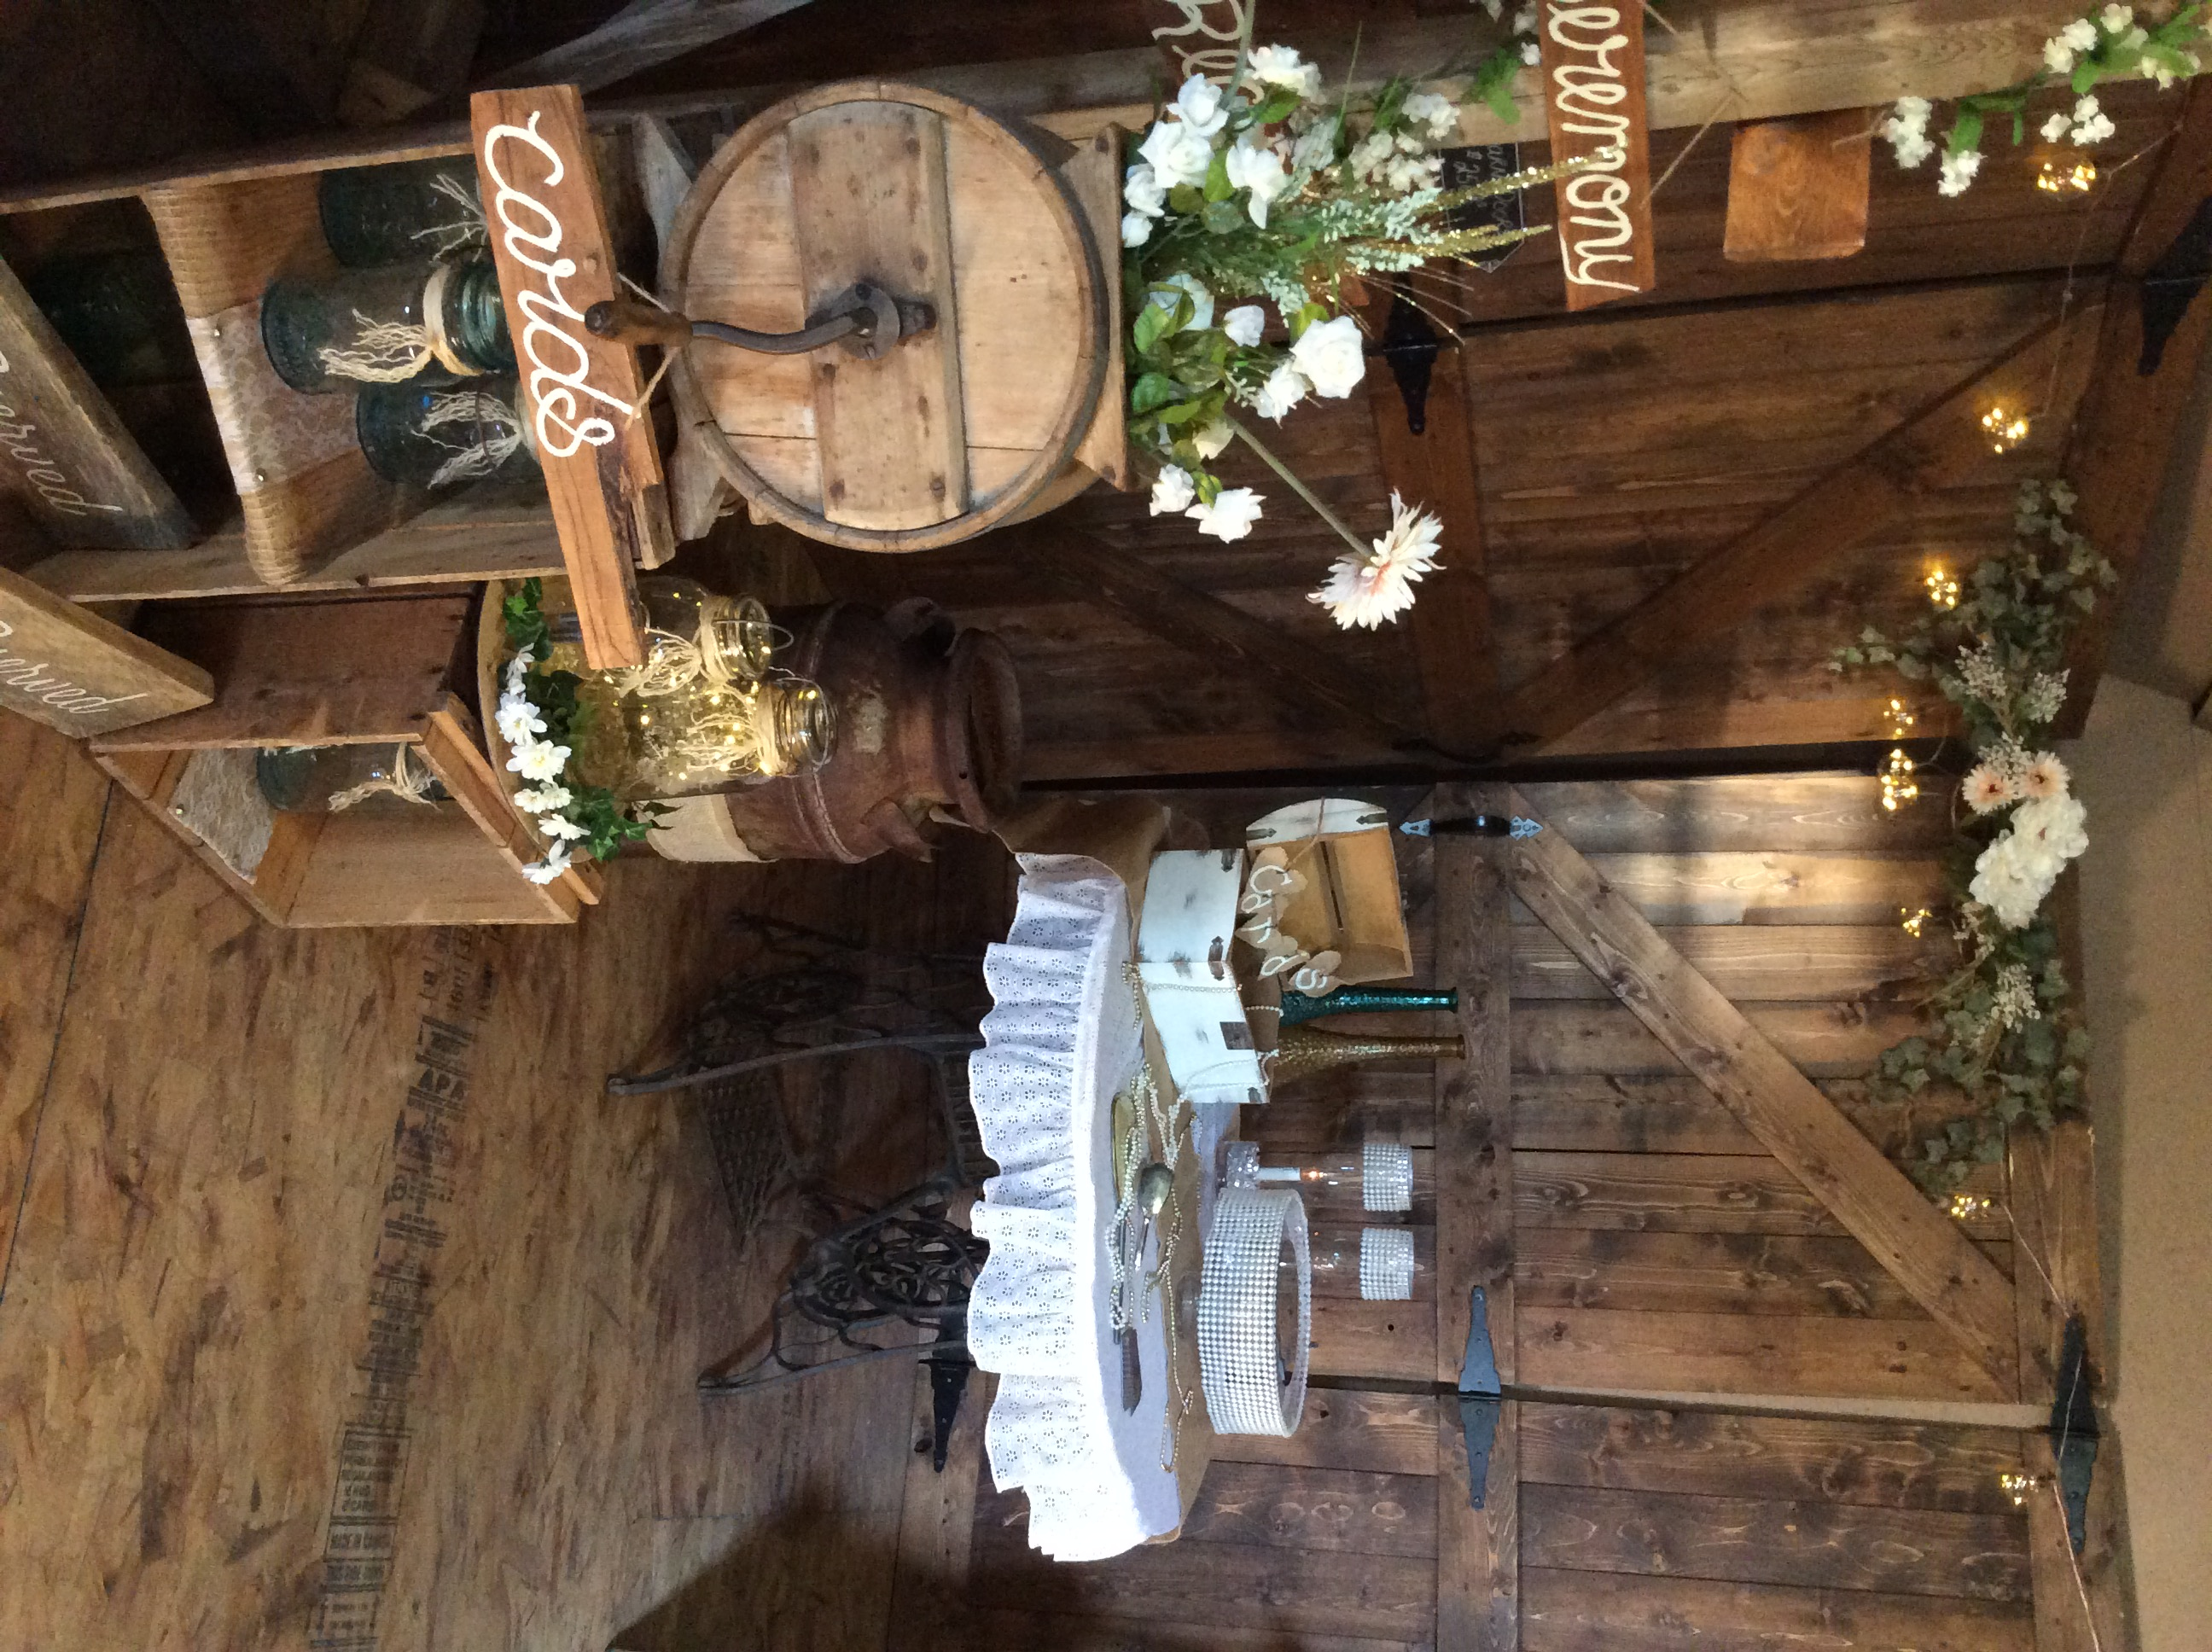 Backdrop Table & Butter Churn